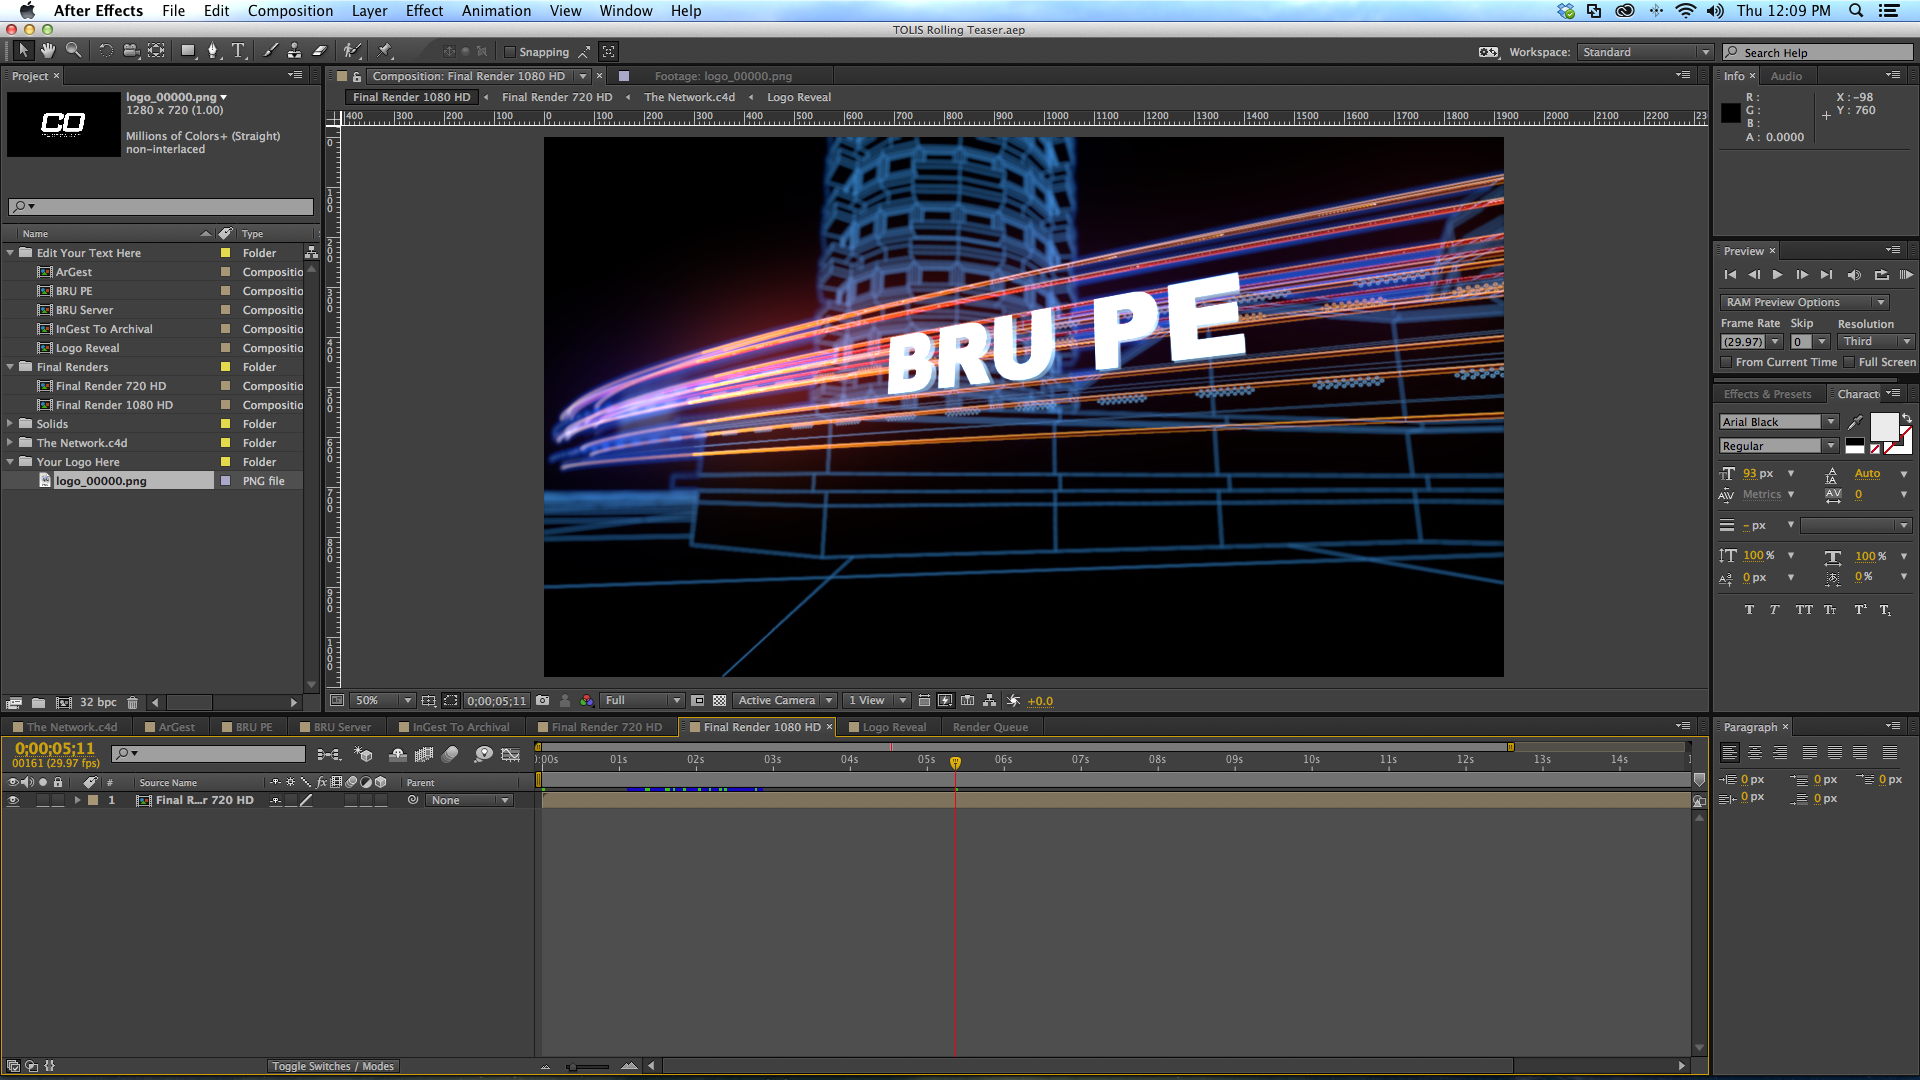 Adobe After Effects CC 2014 13.0.0.214 - x64